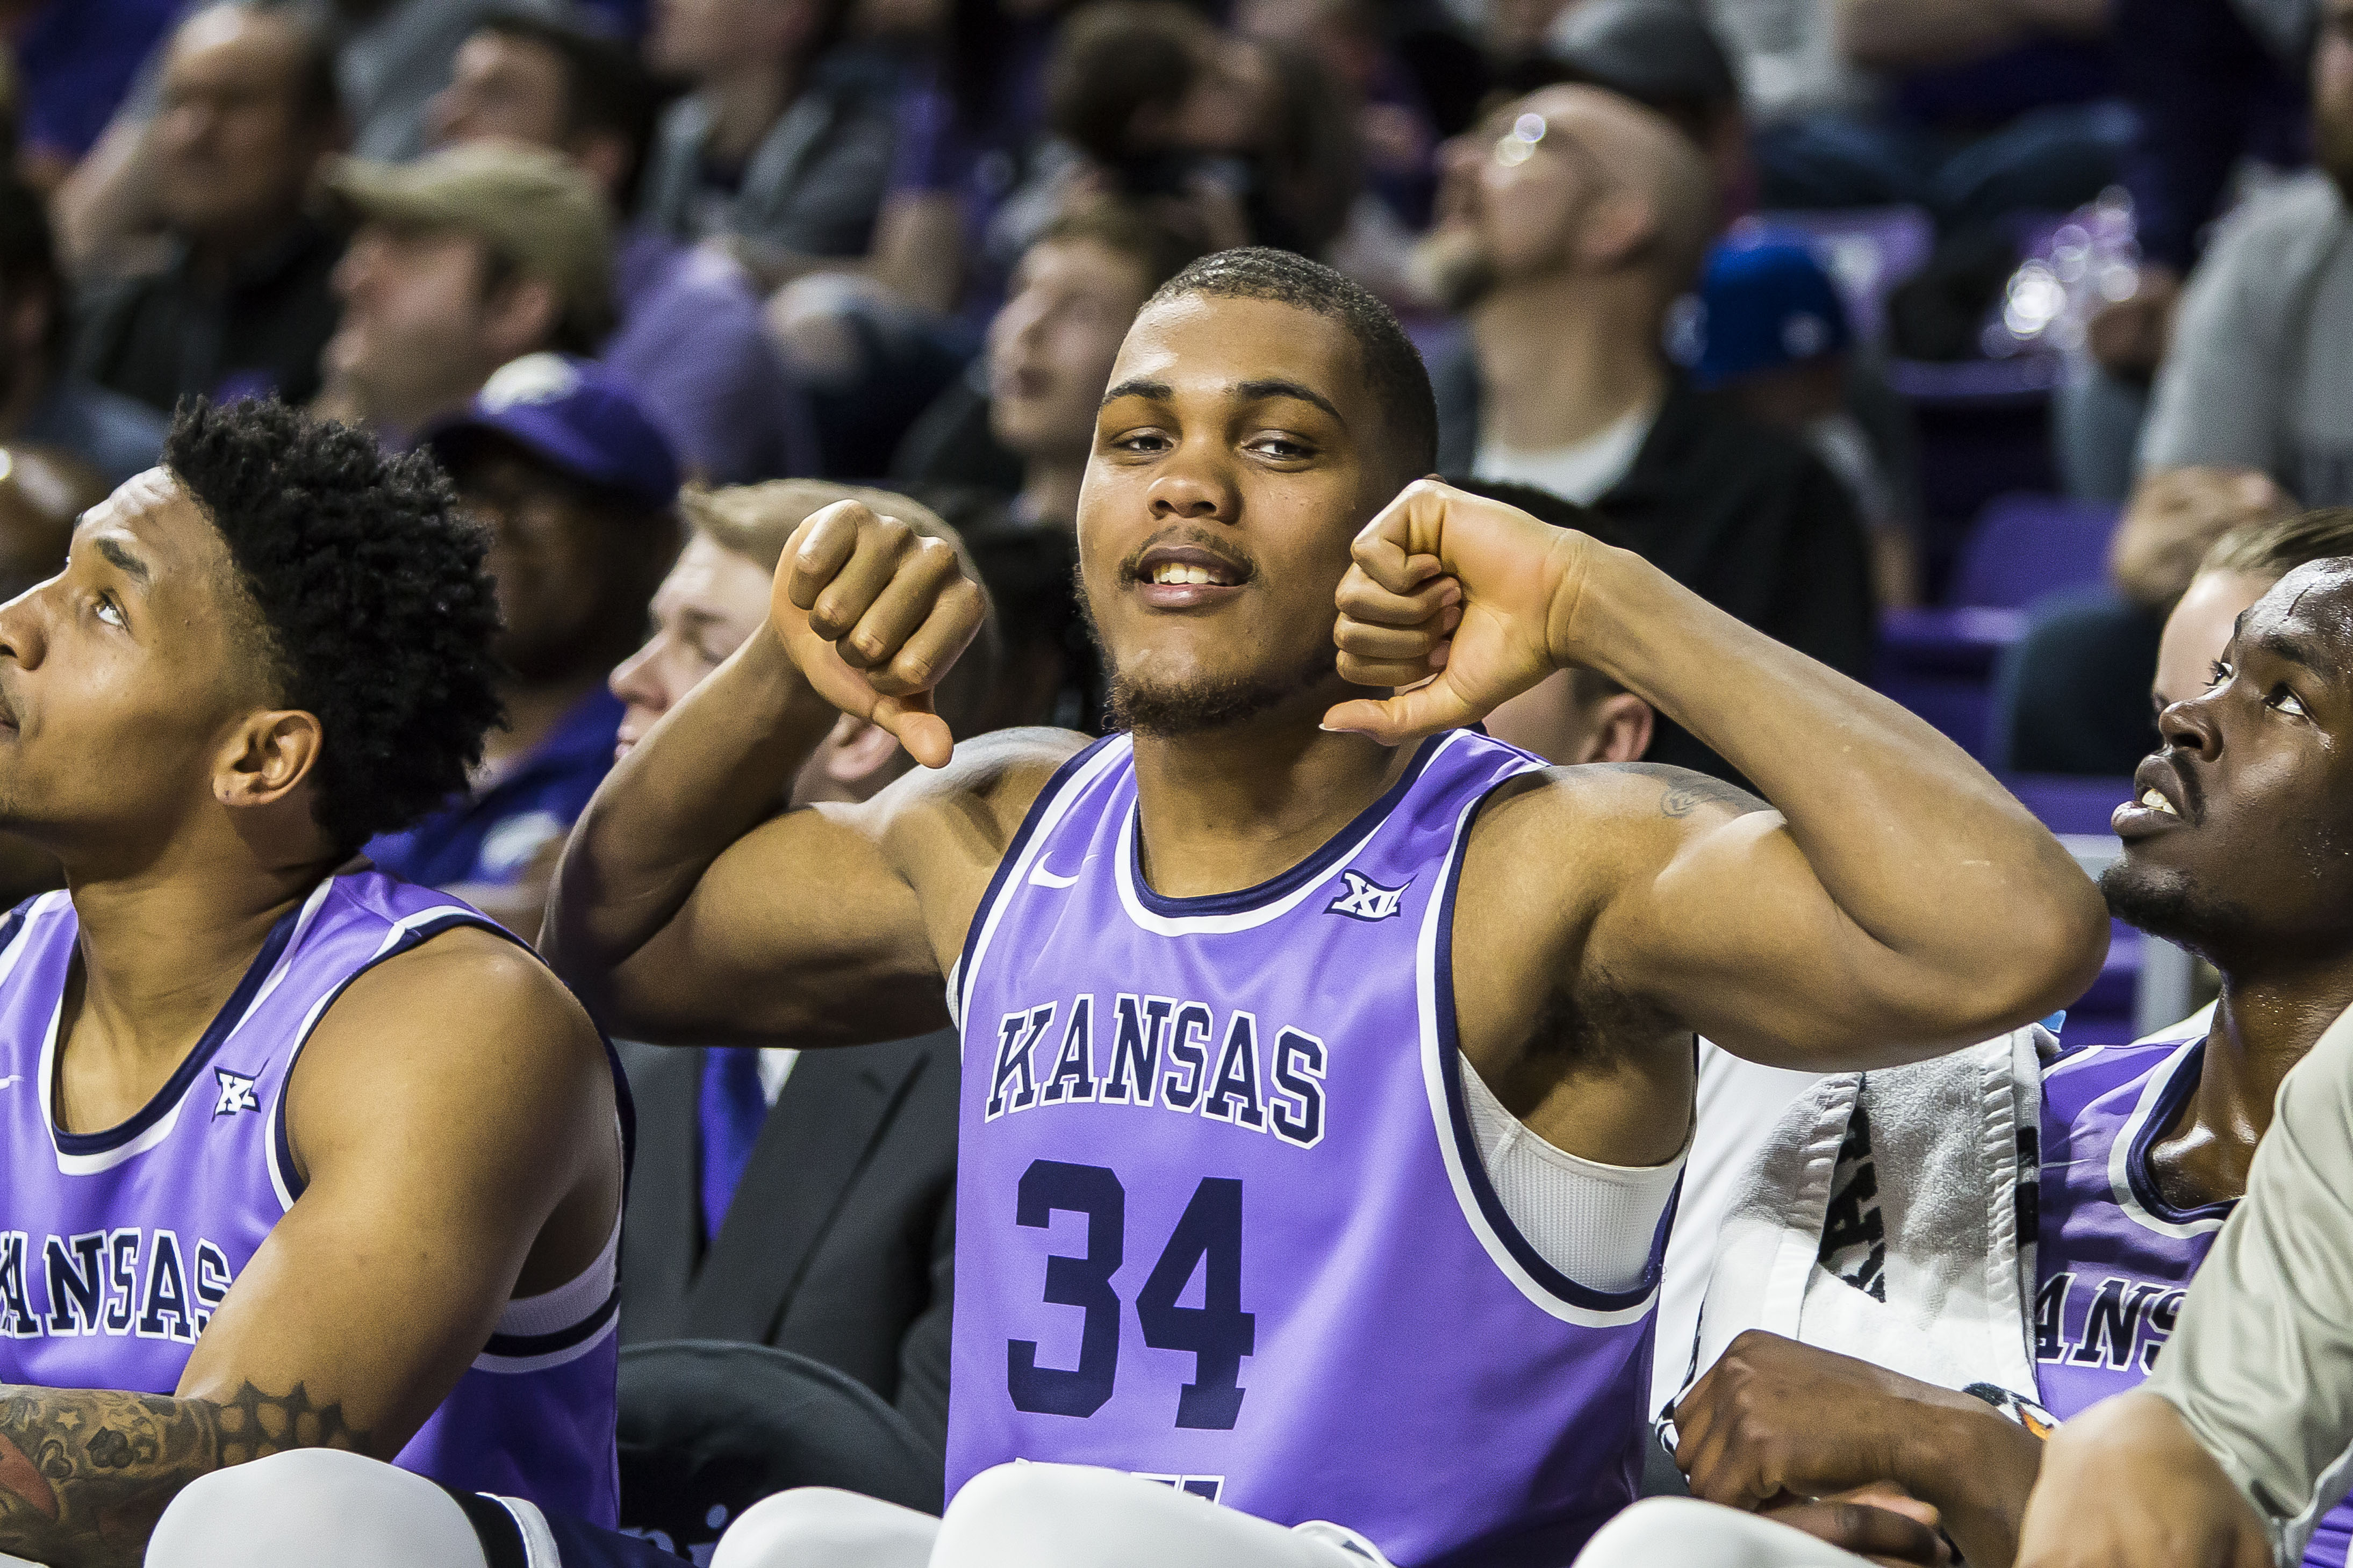 State beats TCU 66 - 64 in OT at Big 12 Championship Quarterfinal